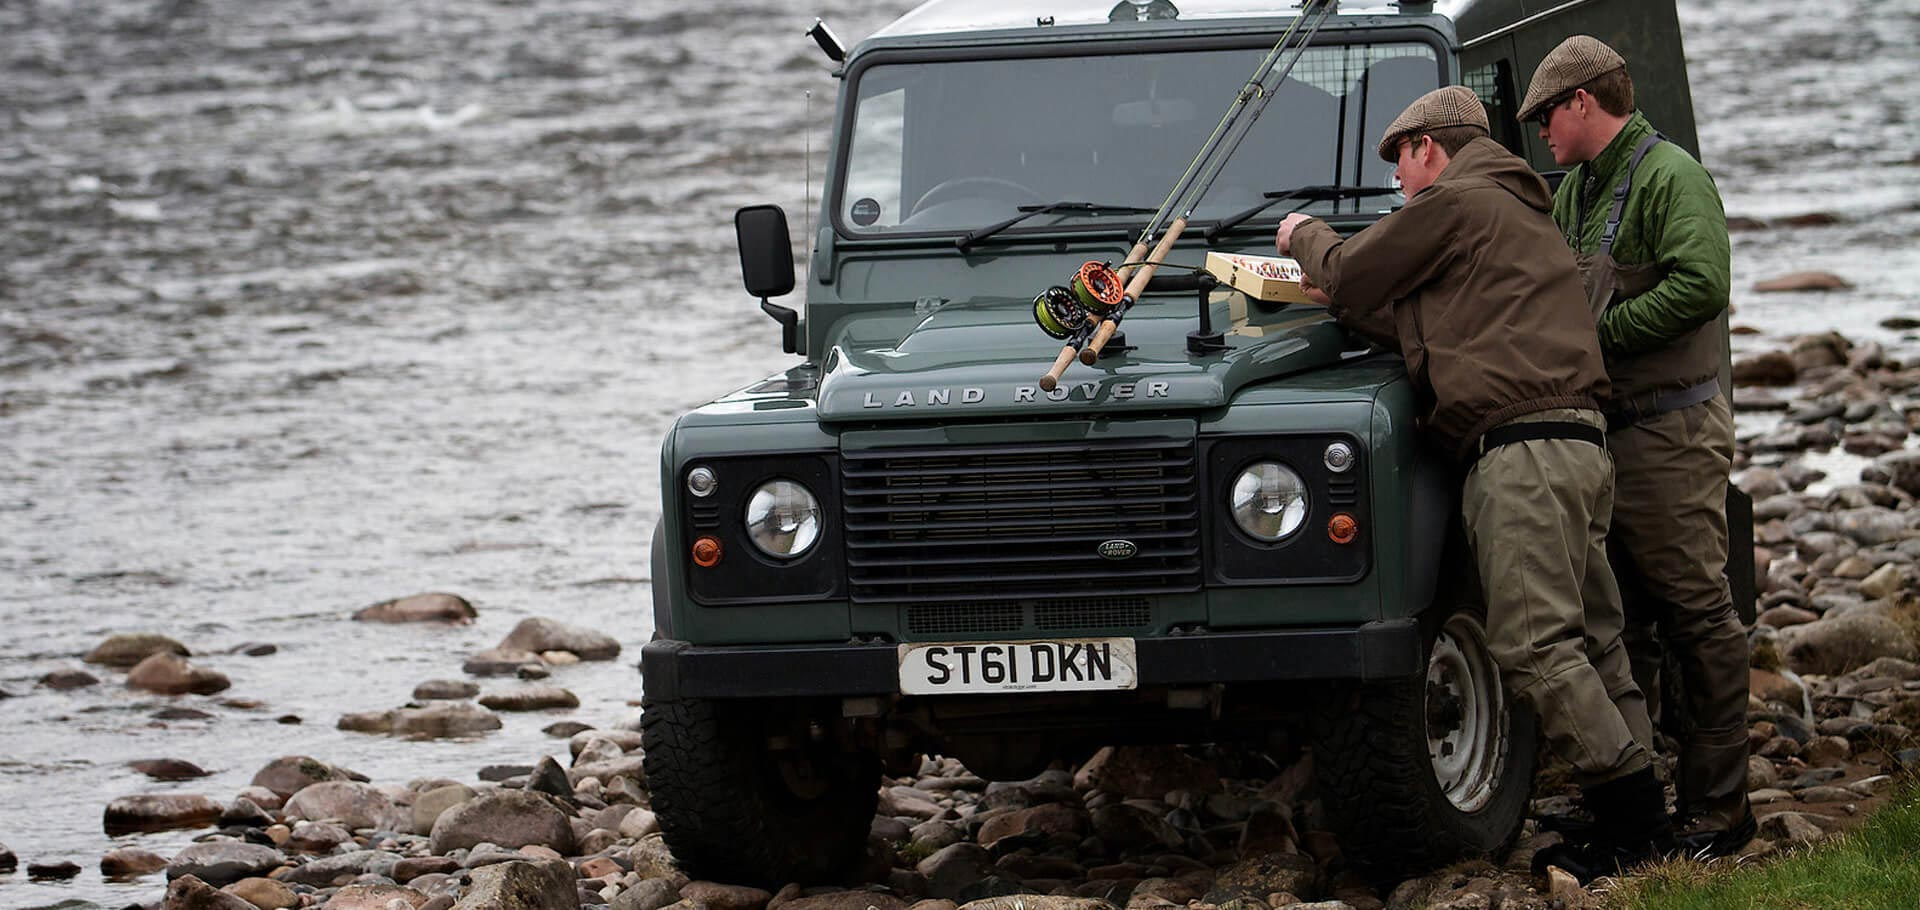 Fisherman next to Landrover by the riverside